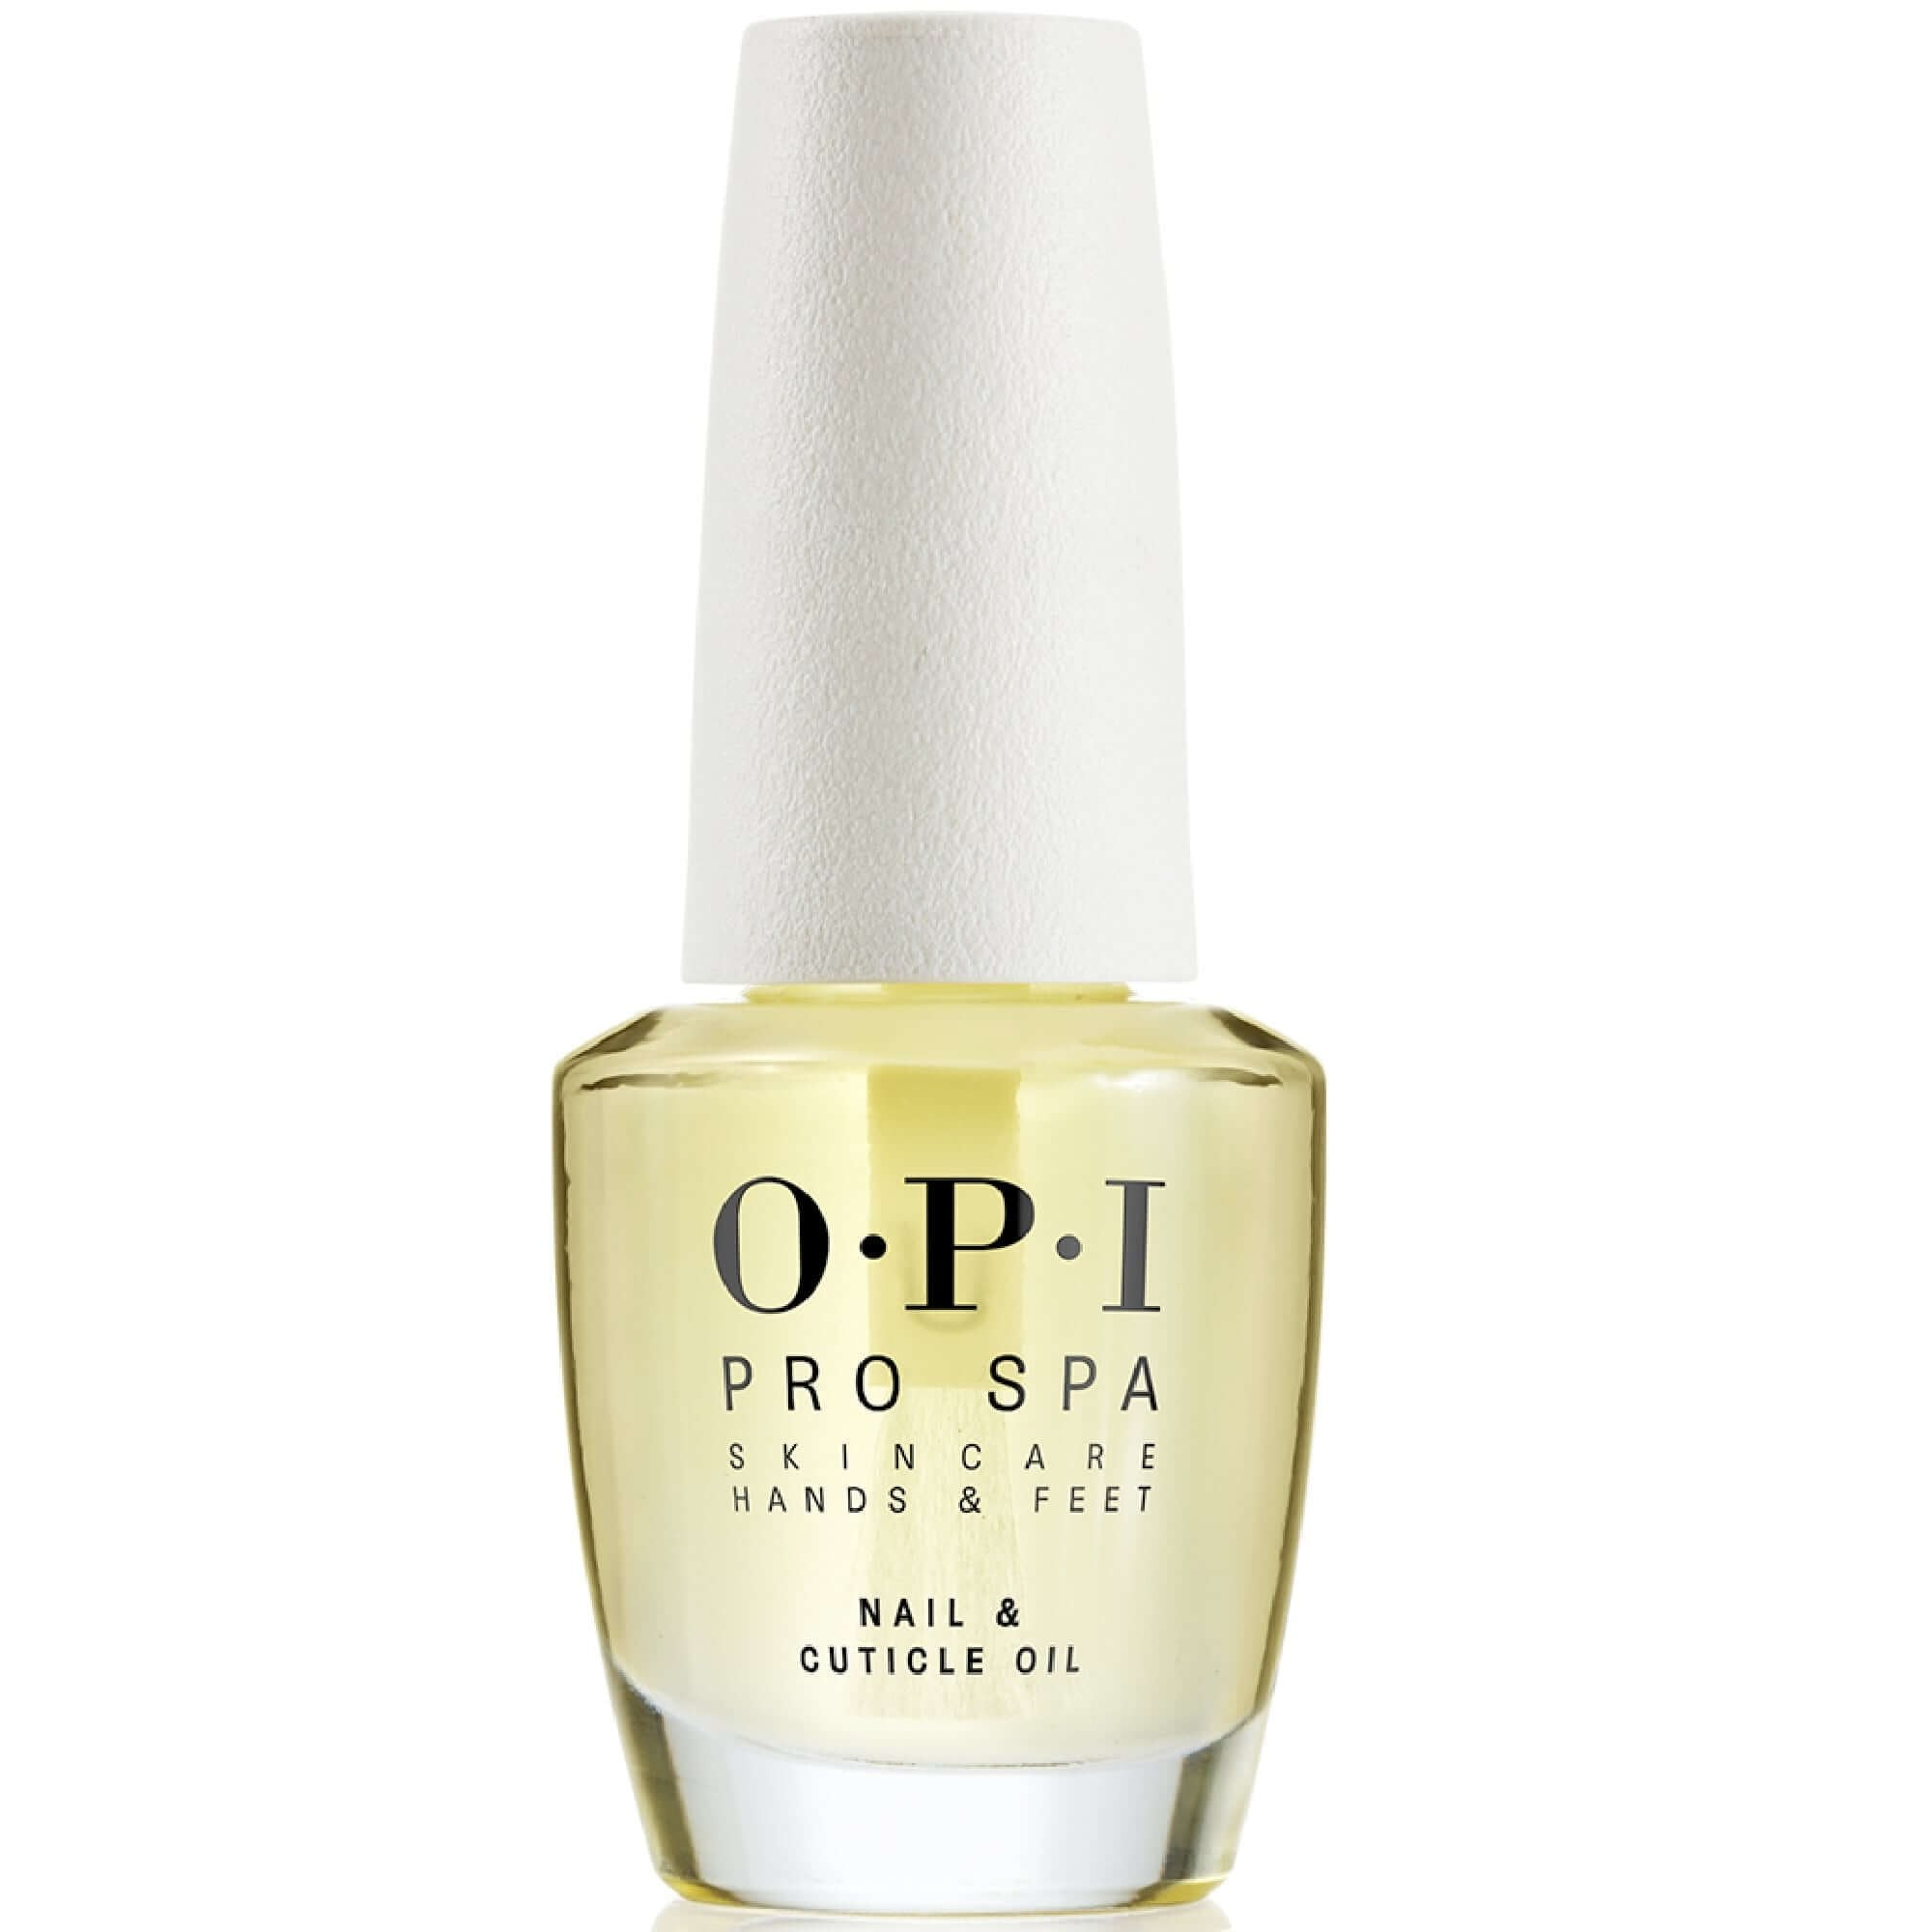 OPI Pro Spa - Nail & Cuticle Oil 14.8ml